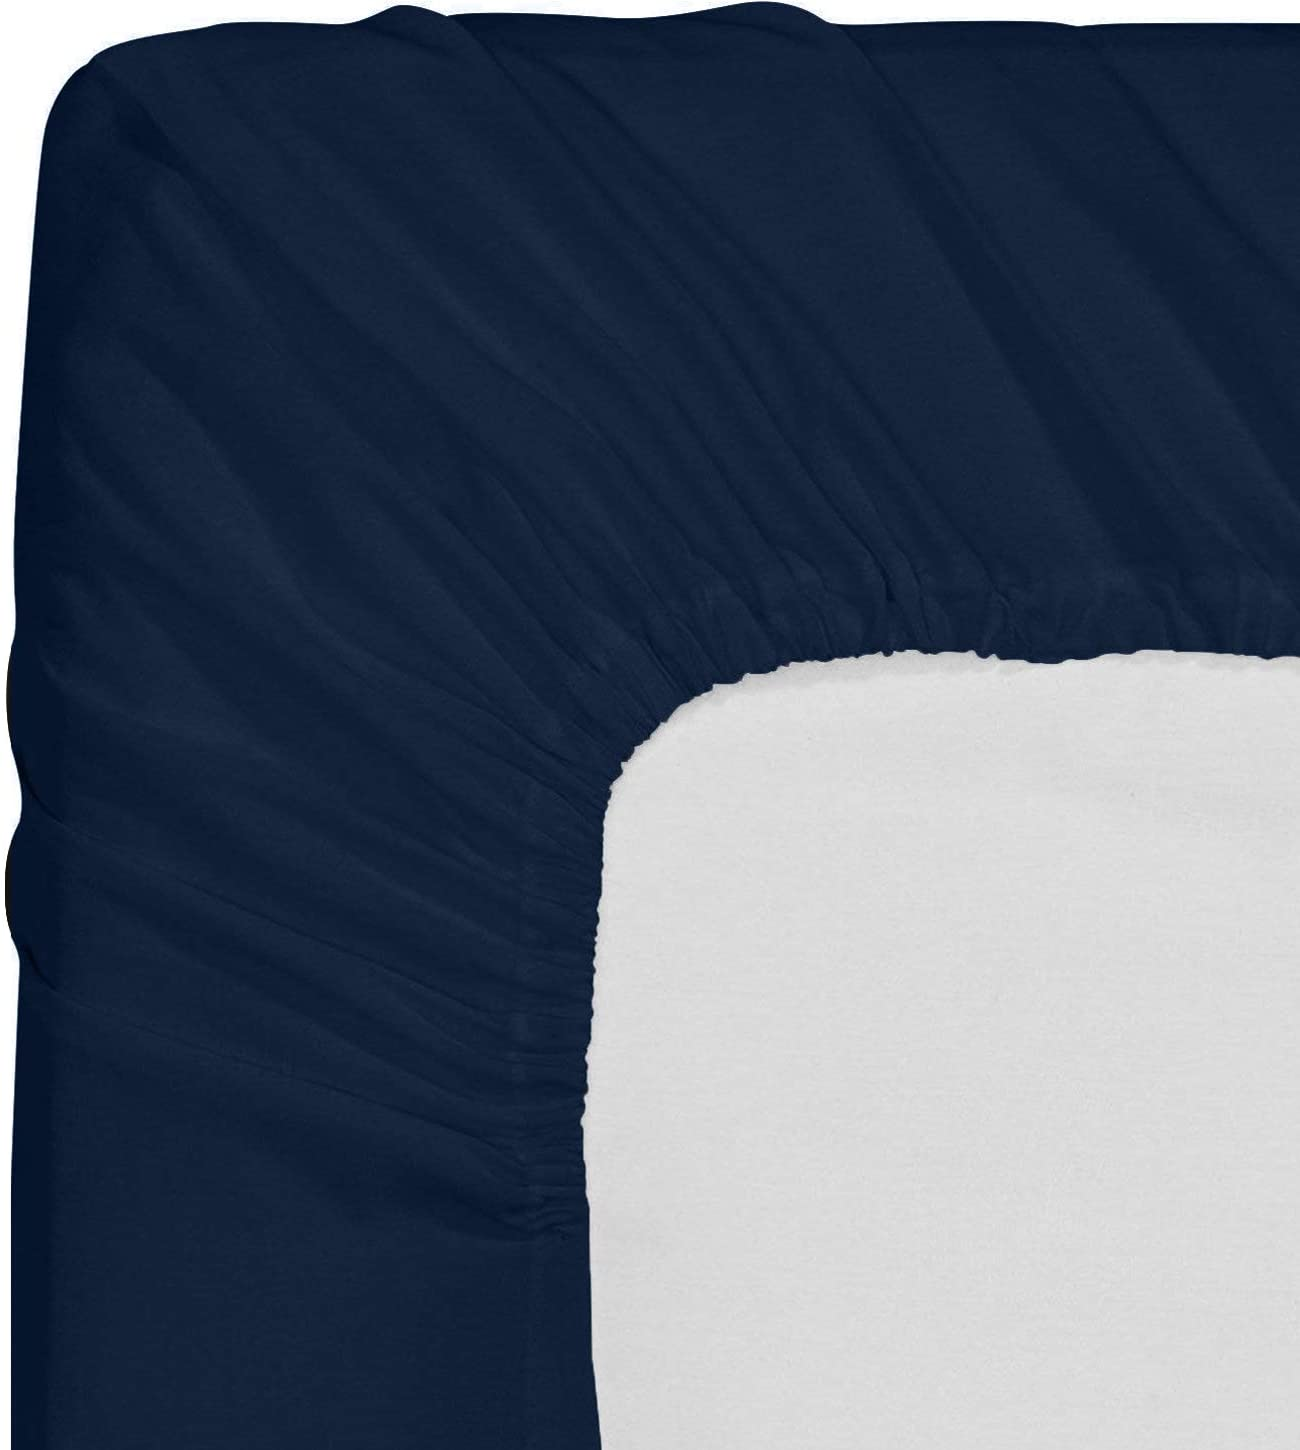 Deep Pockets Utopia Bedding Fitted Sheet Pack of 2 Bottom Sheets Twin, Grey Easy Care Soft Brushed Microfiber Shrinkage /& Fade Resistant